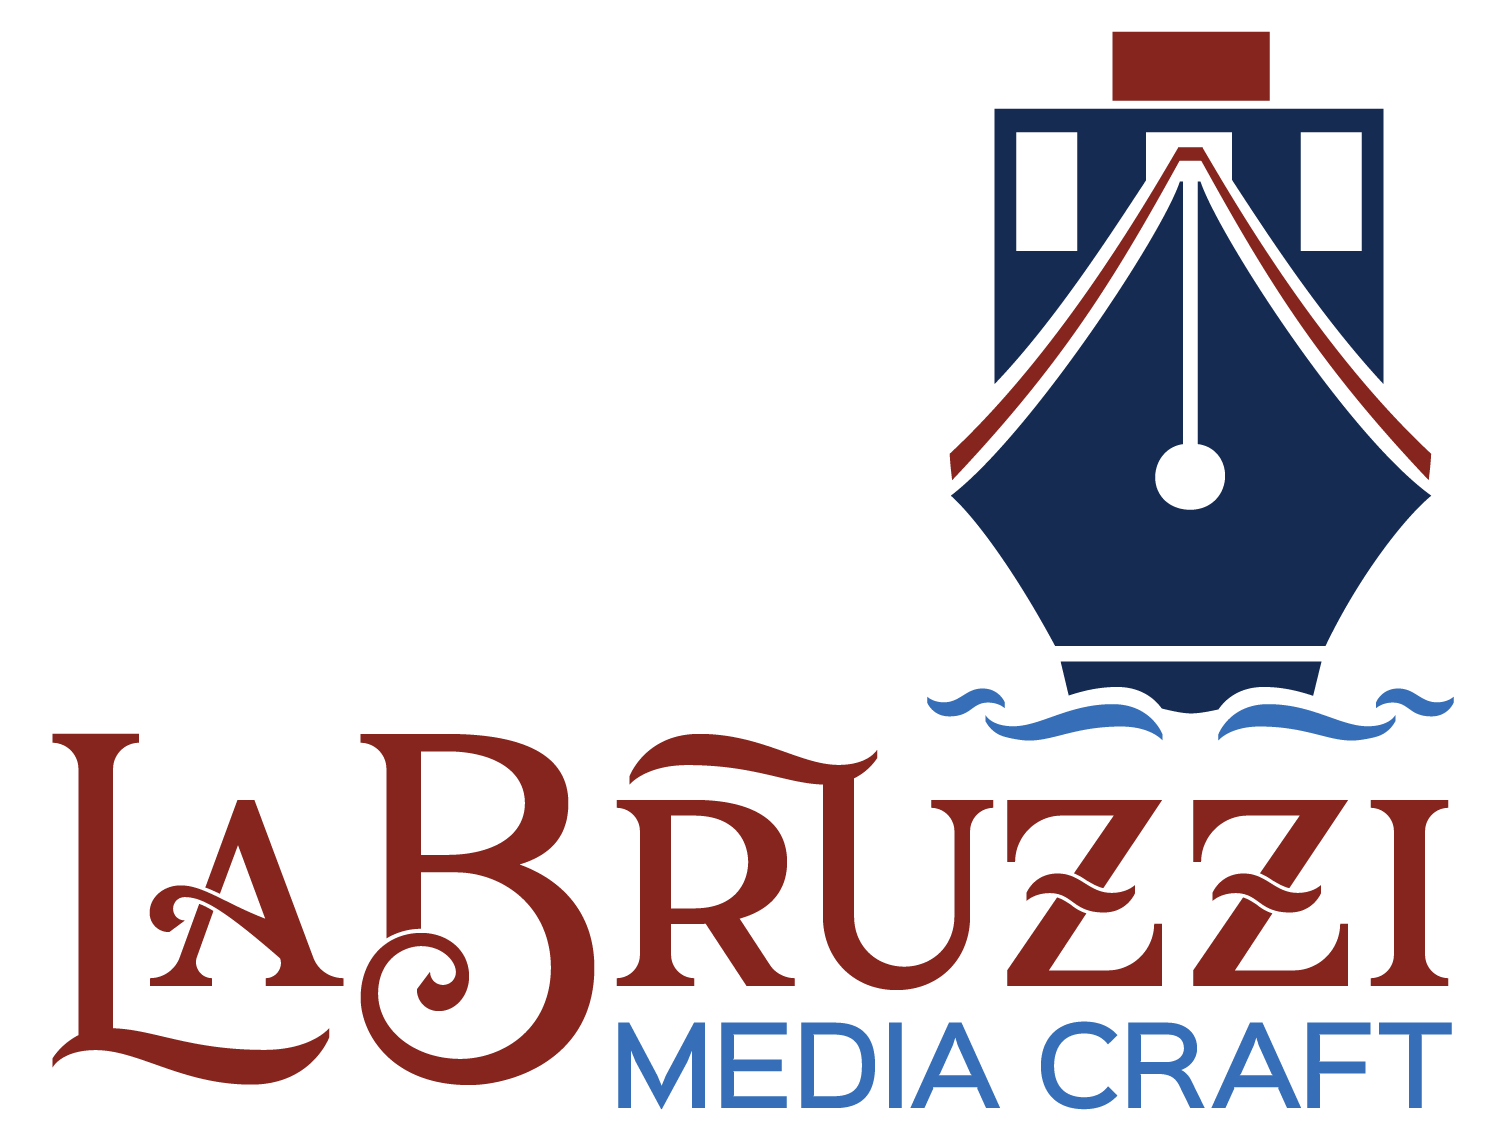 LaBruzzi Media Craft